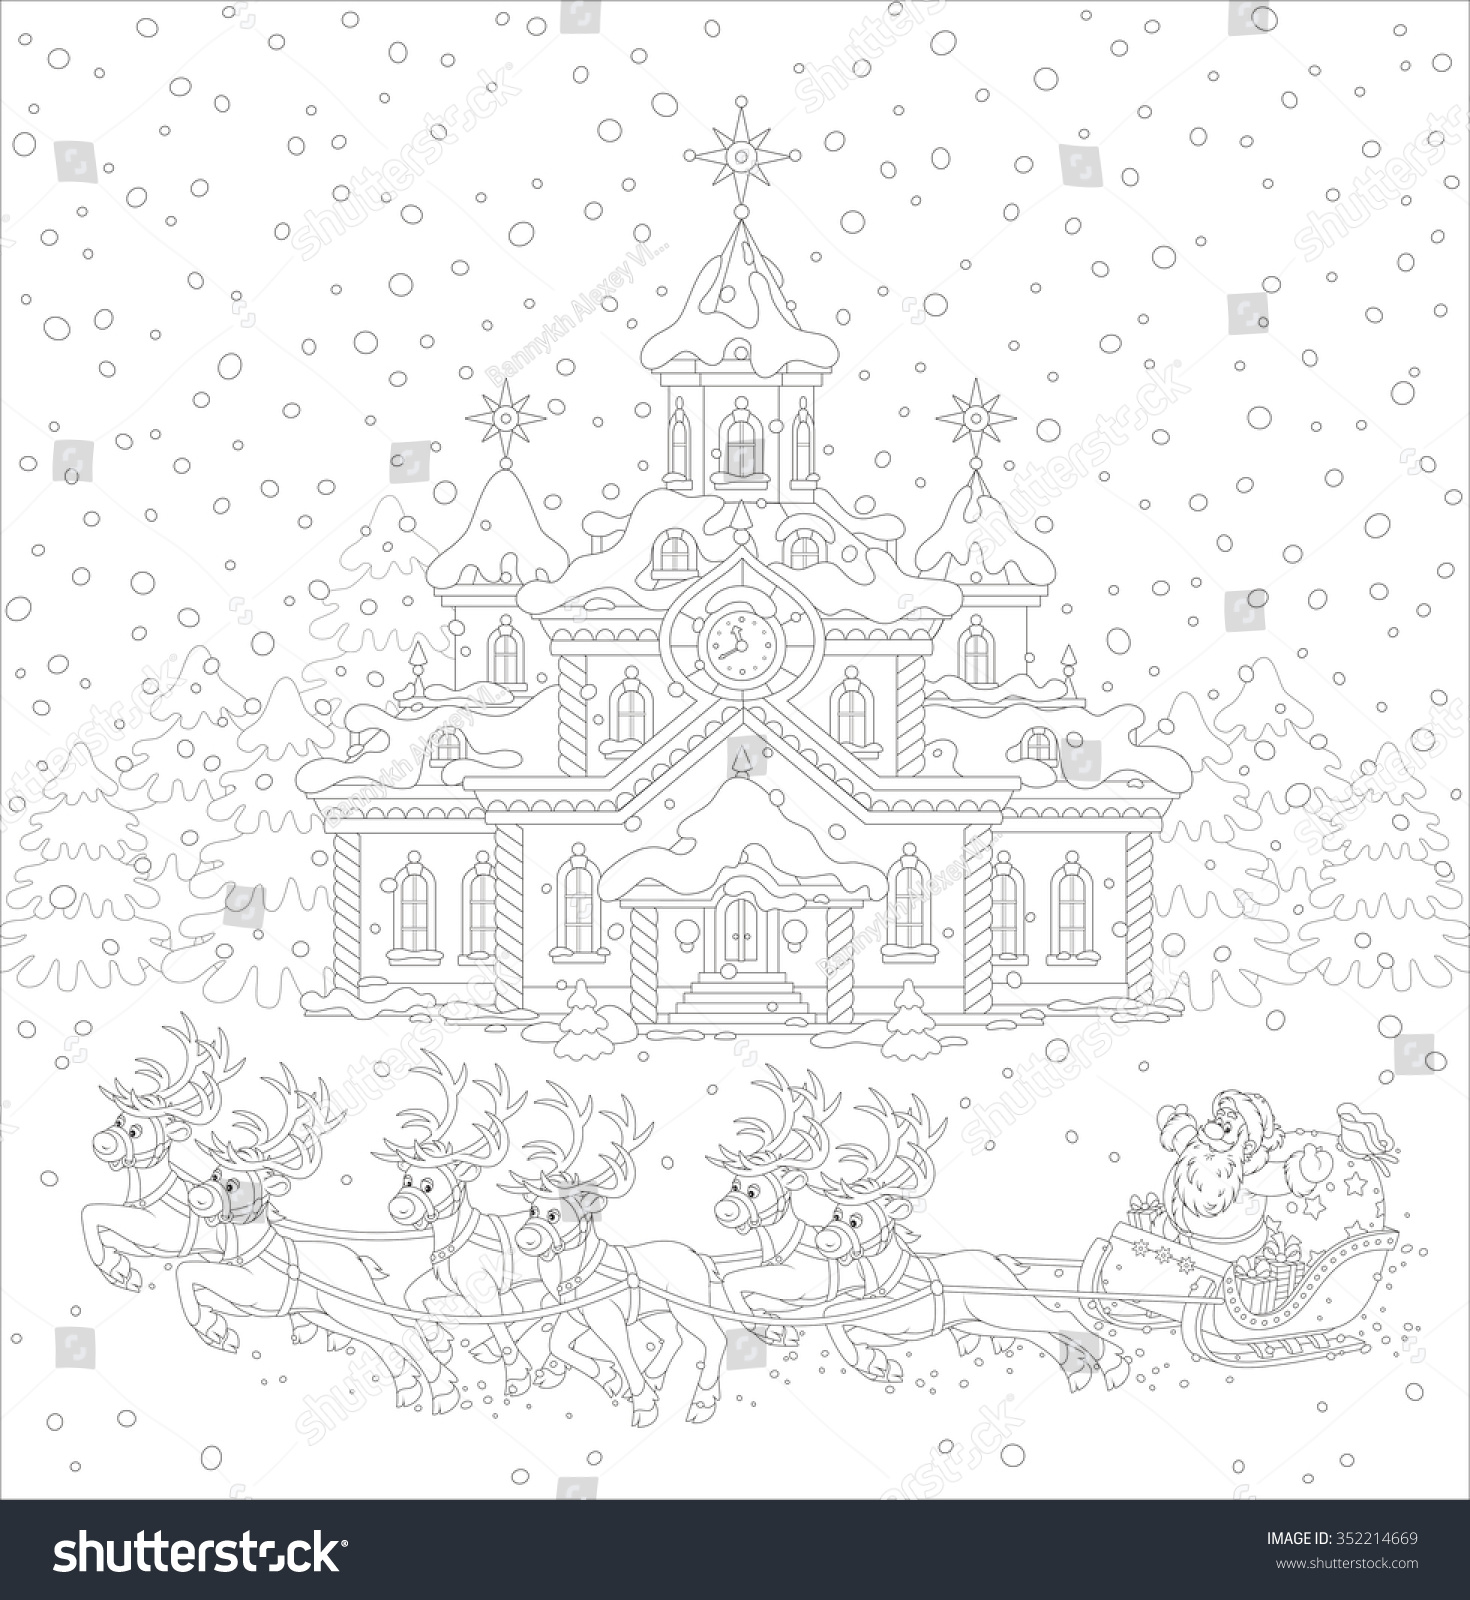 Santa On Rooftop Coloring Page With The Night Before Christmas Claus Gifts In A House His